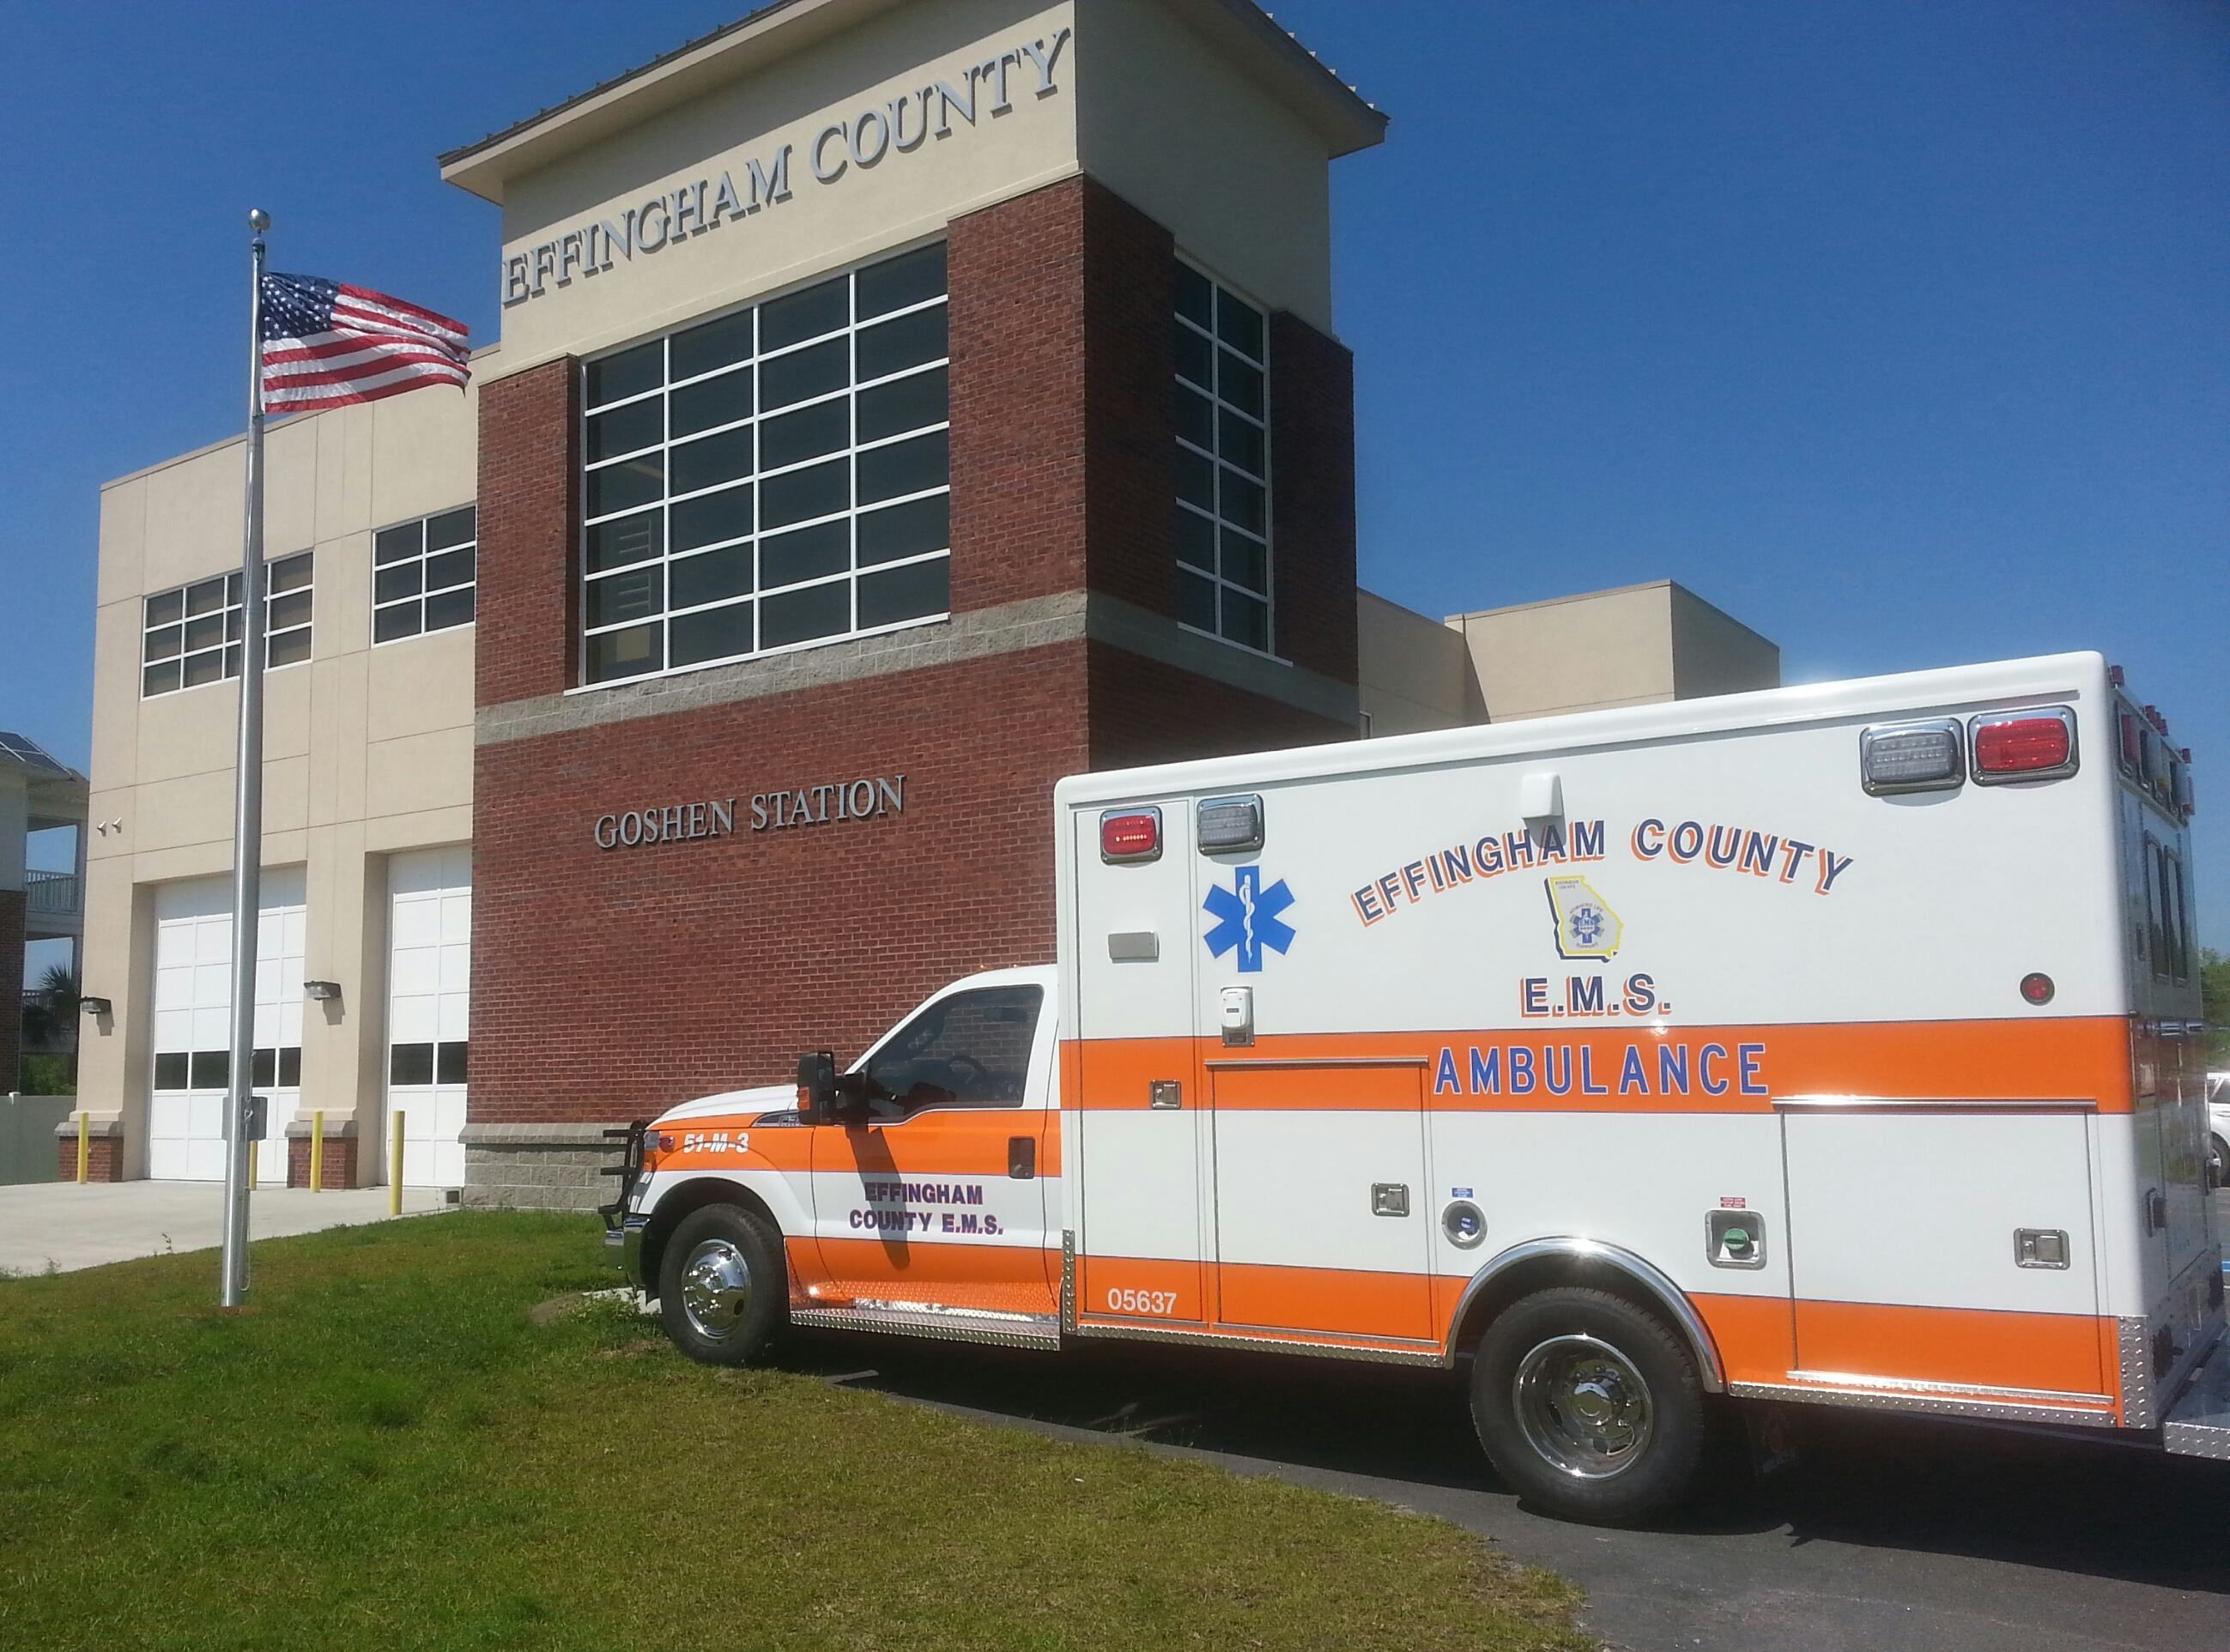 Effingham County EMS Ambulance